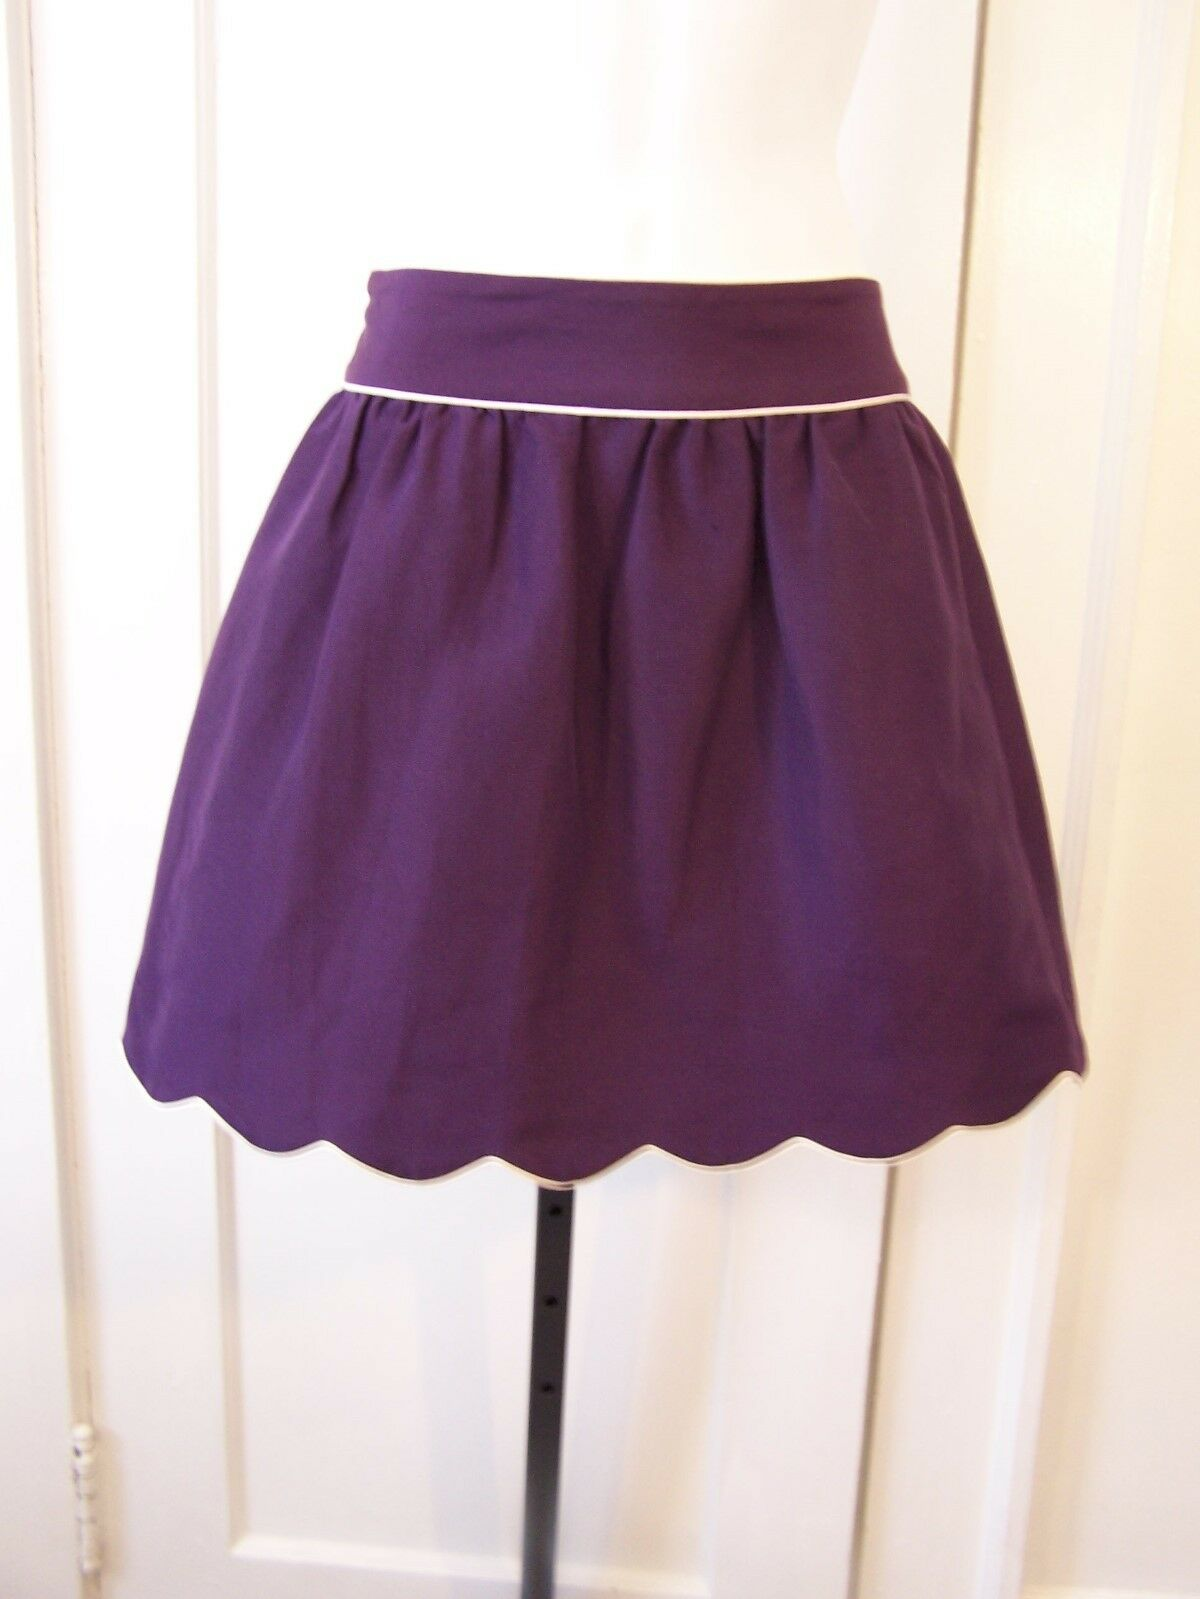 ANNIE GRIFFIN COLLECTION CHELESA EGGPLANT SKIRT WITH WHITE TRIM SIZE 4   216.00